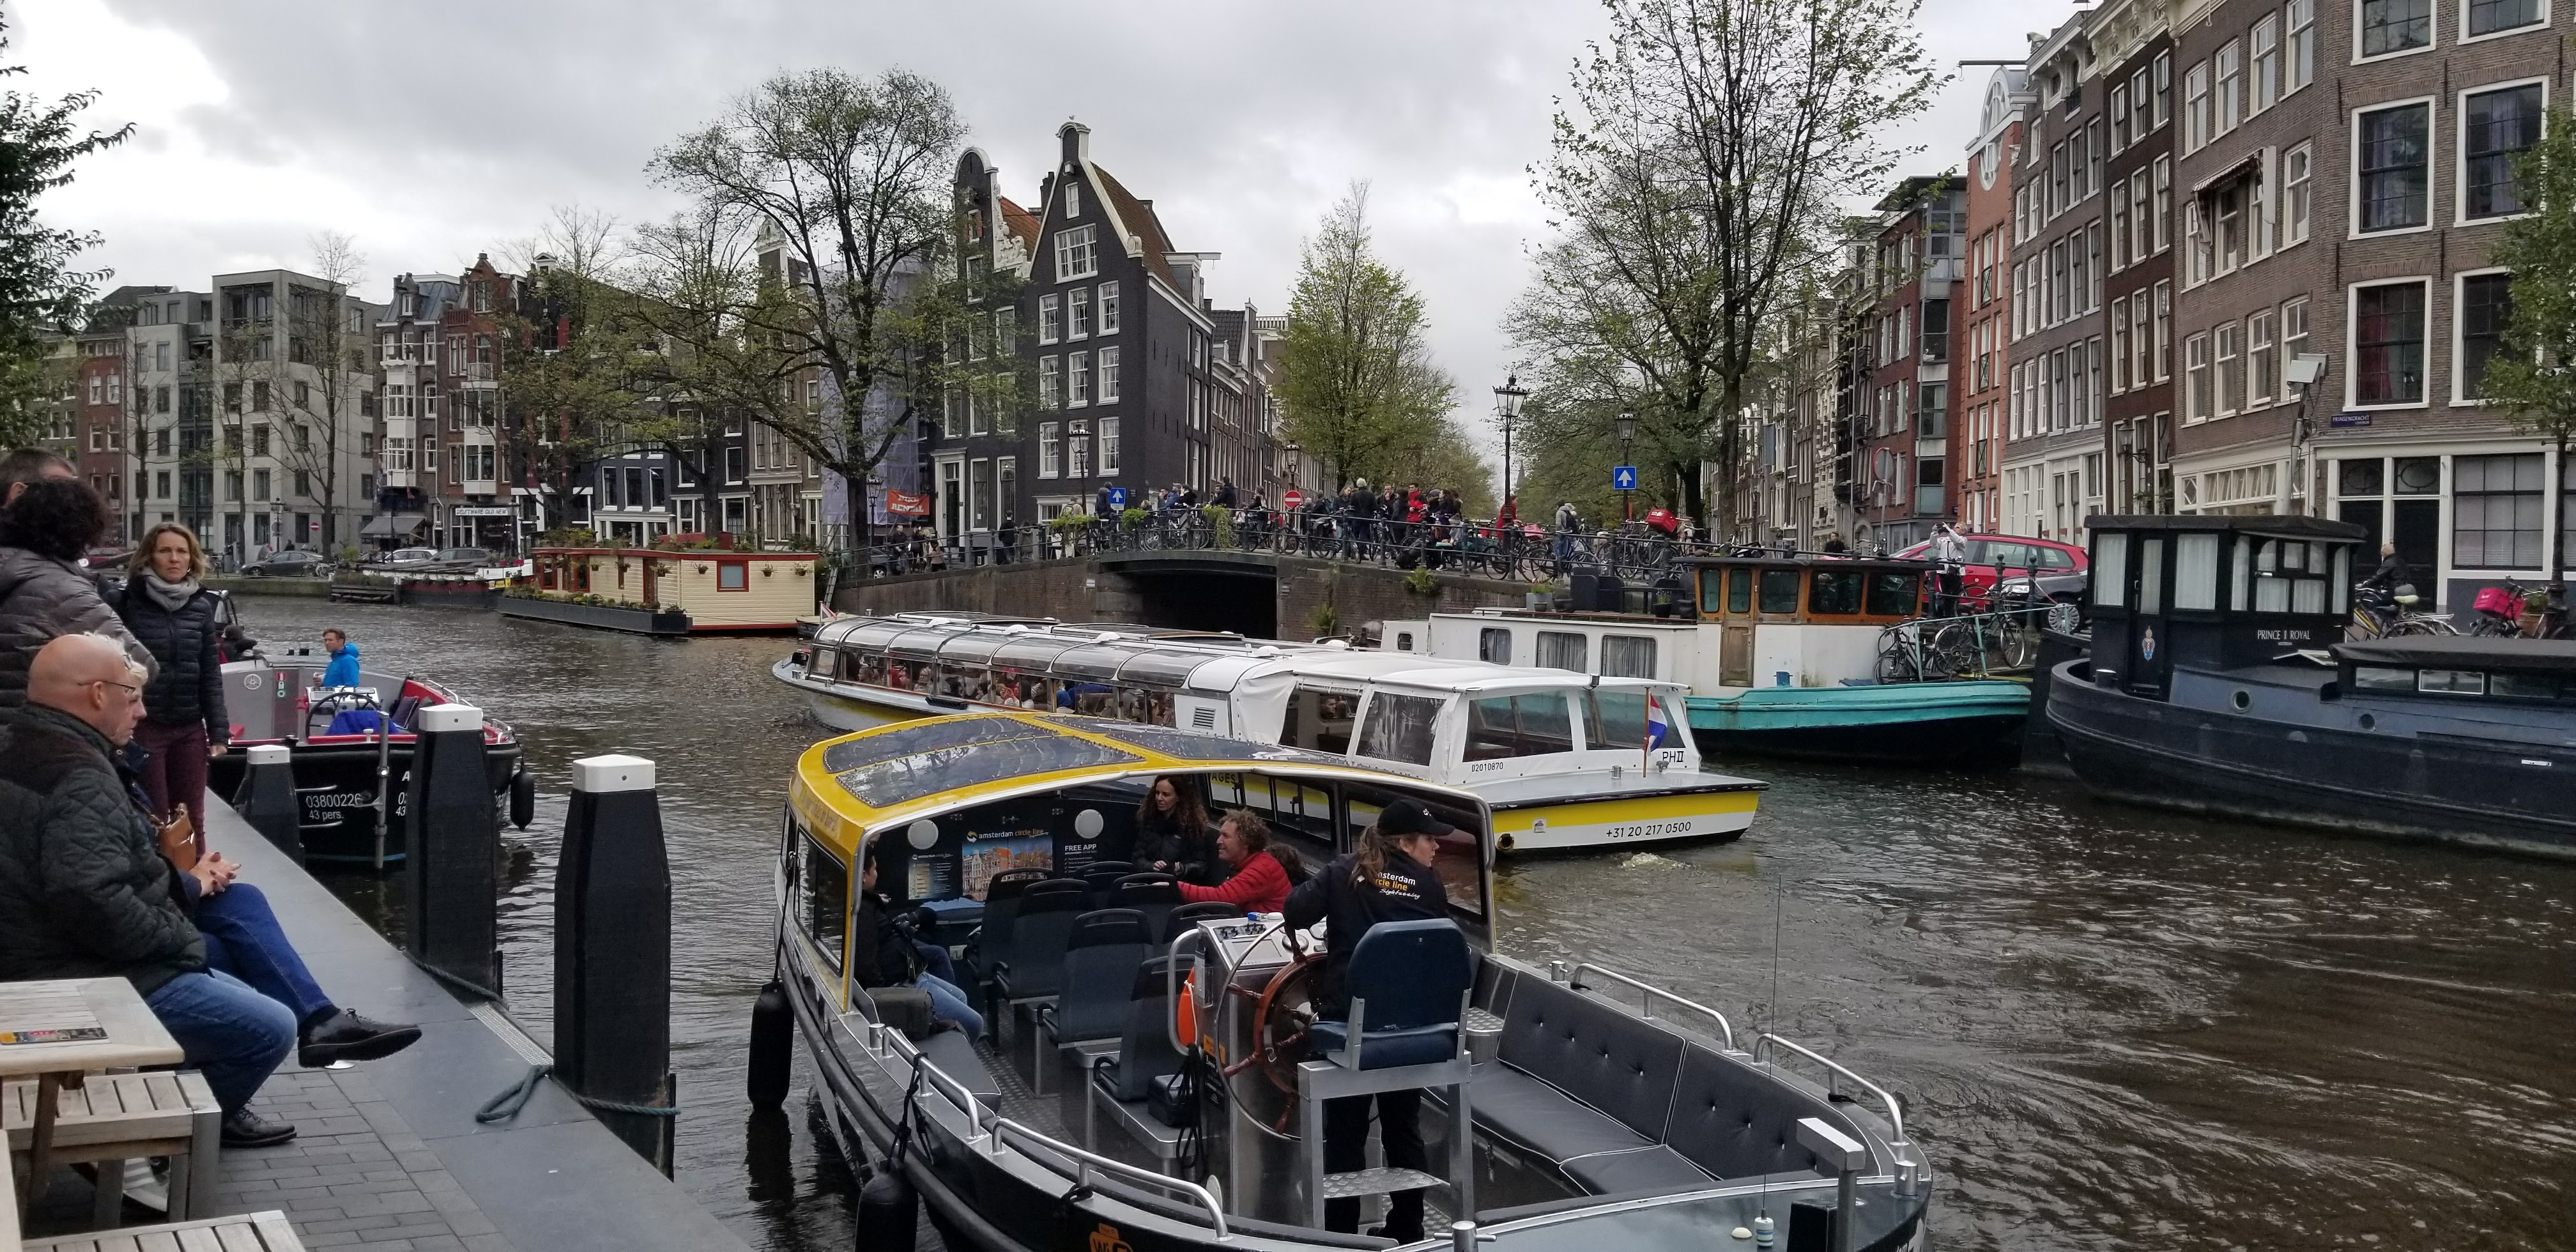 CAPAStudyAbroad_London_Fall2017_From Thaddeus Kaszuba - Amsterdam - People riding about the Canals to roam the city.jpg